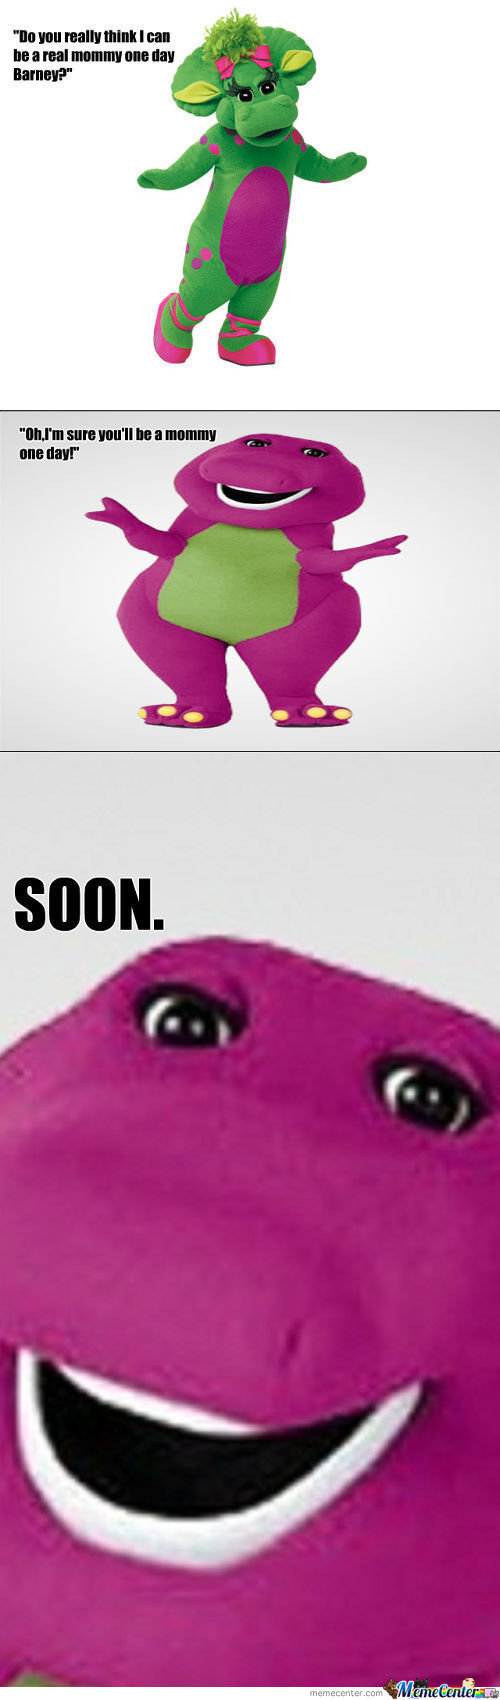 The Evil Barney